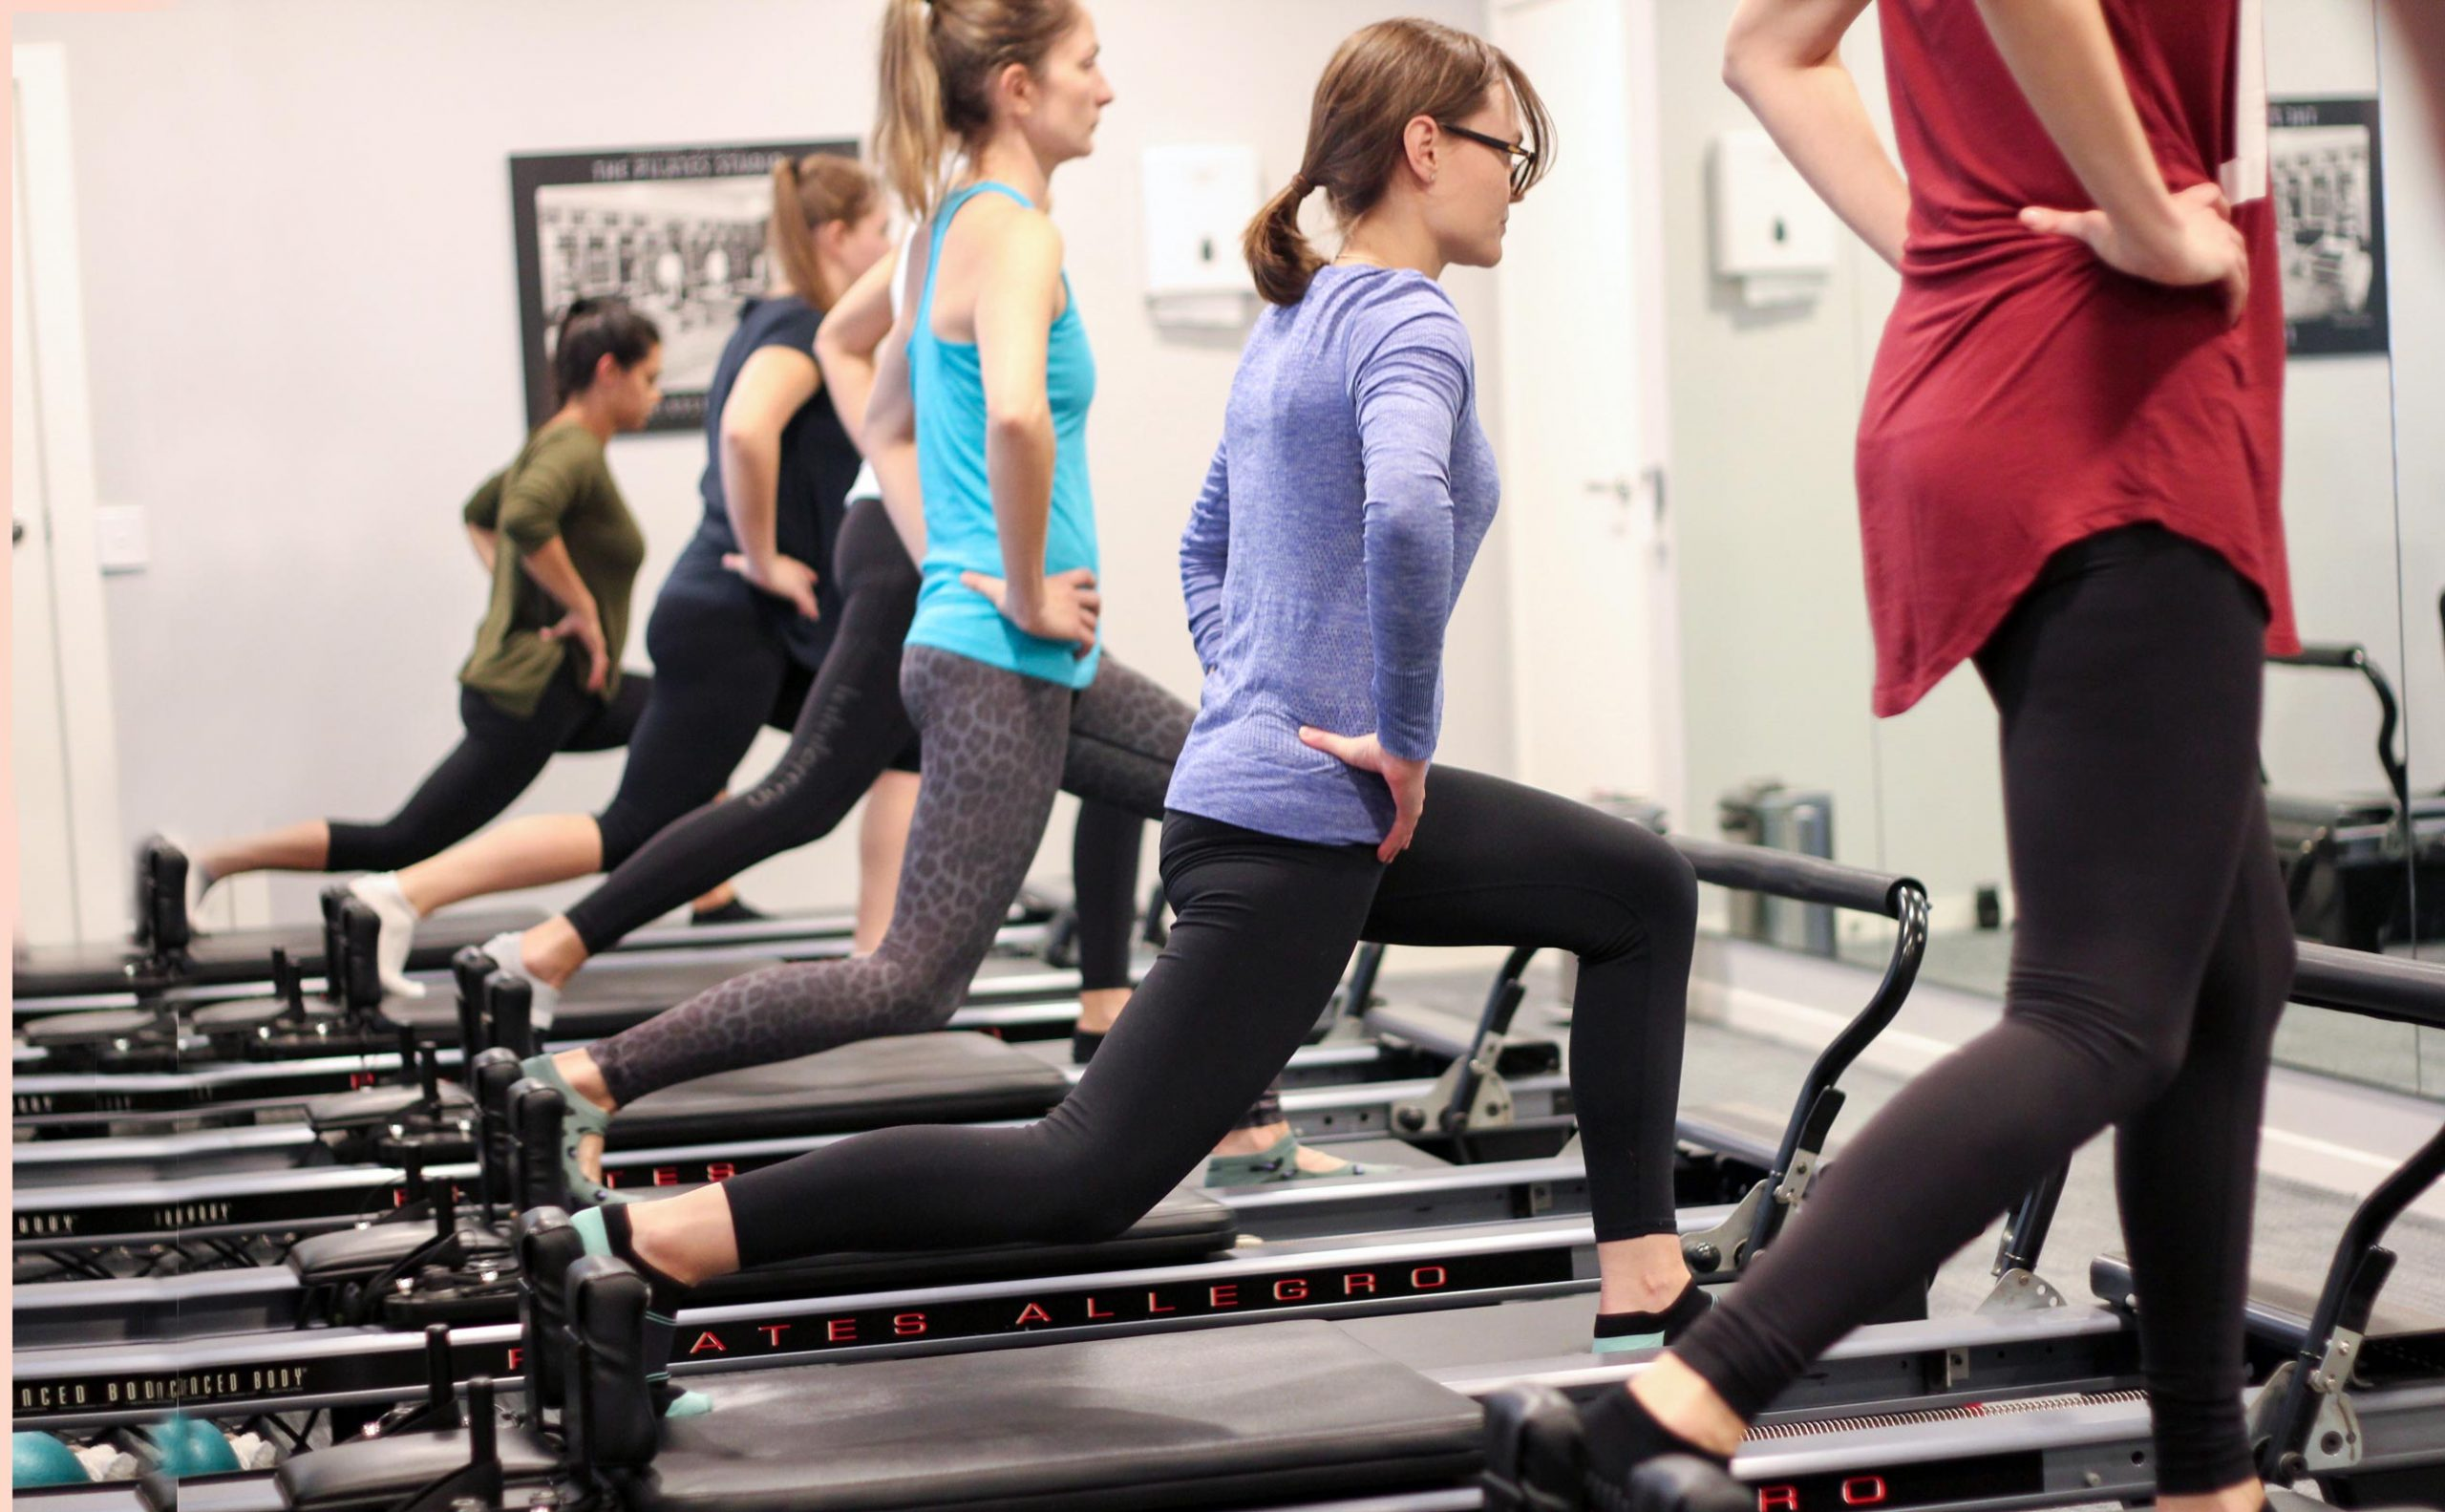 What Pilates/Fitness class should I be doing?